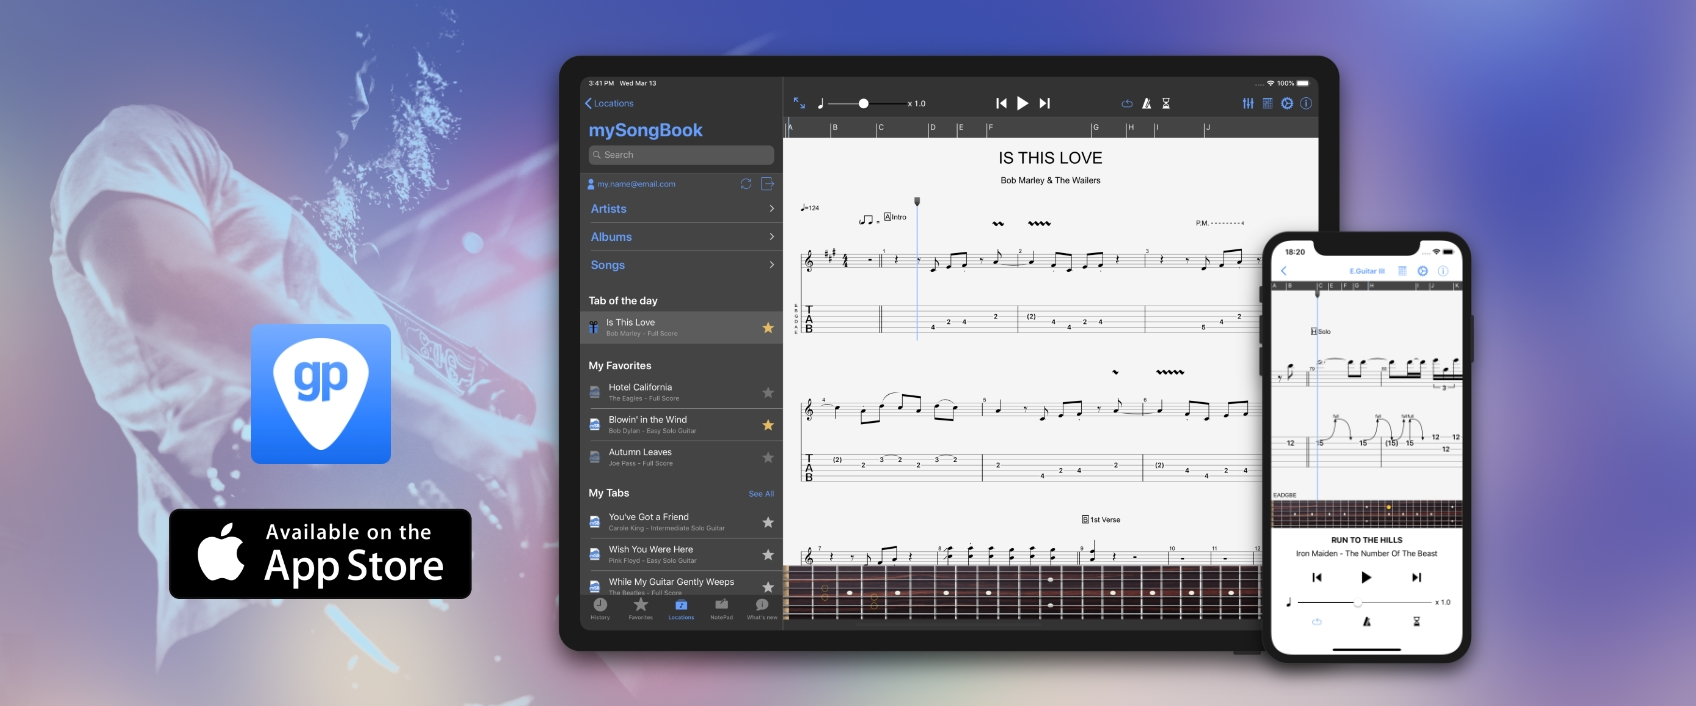 Guitar Pro for iOS : New update 1.9.0